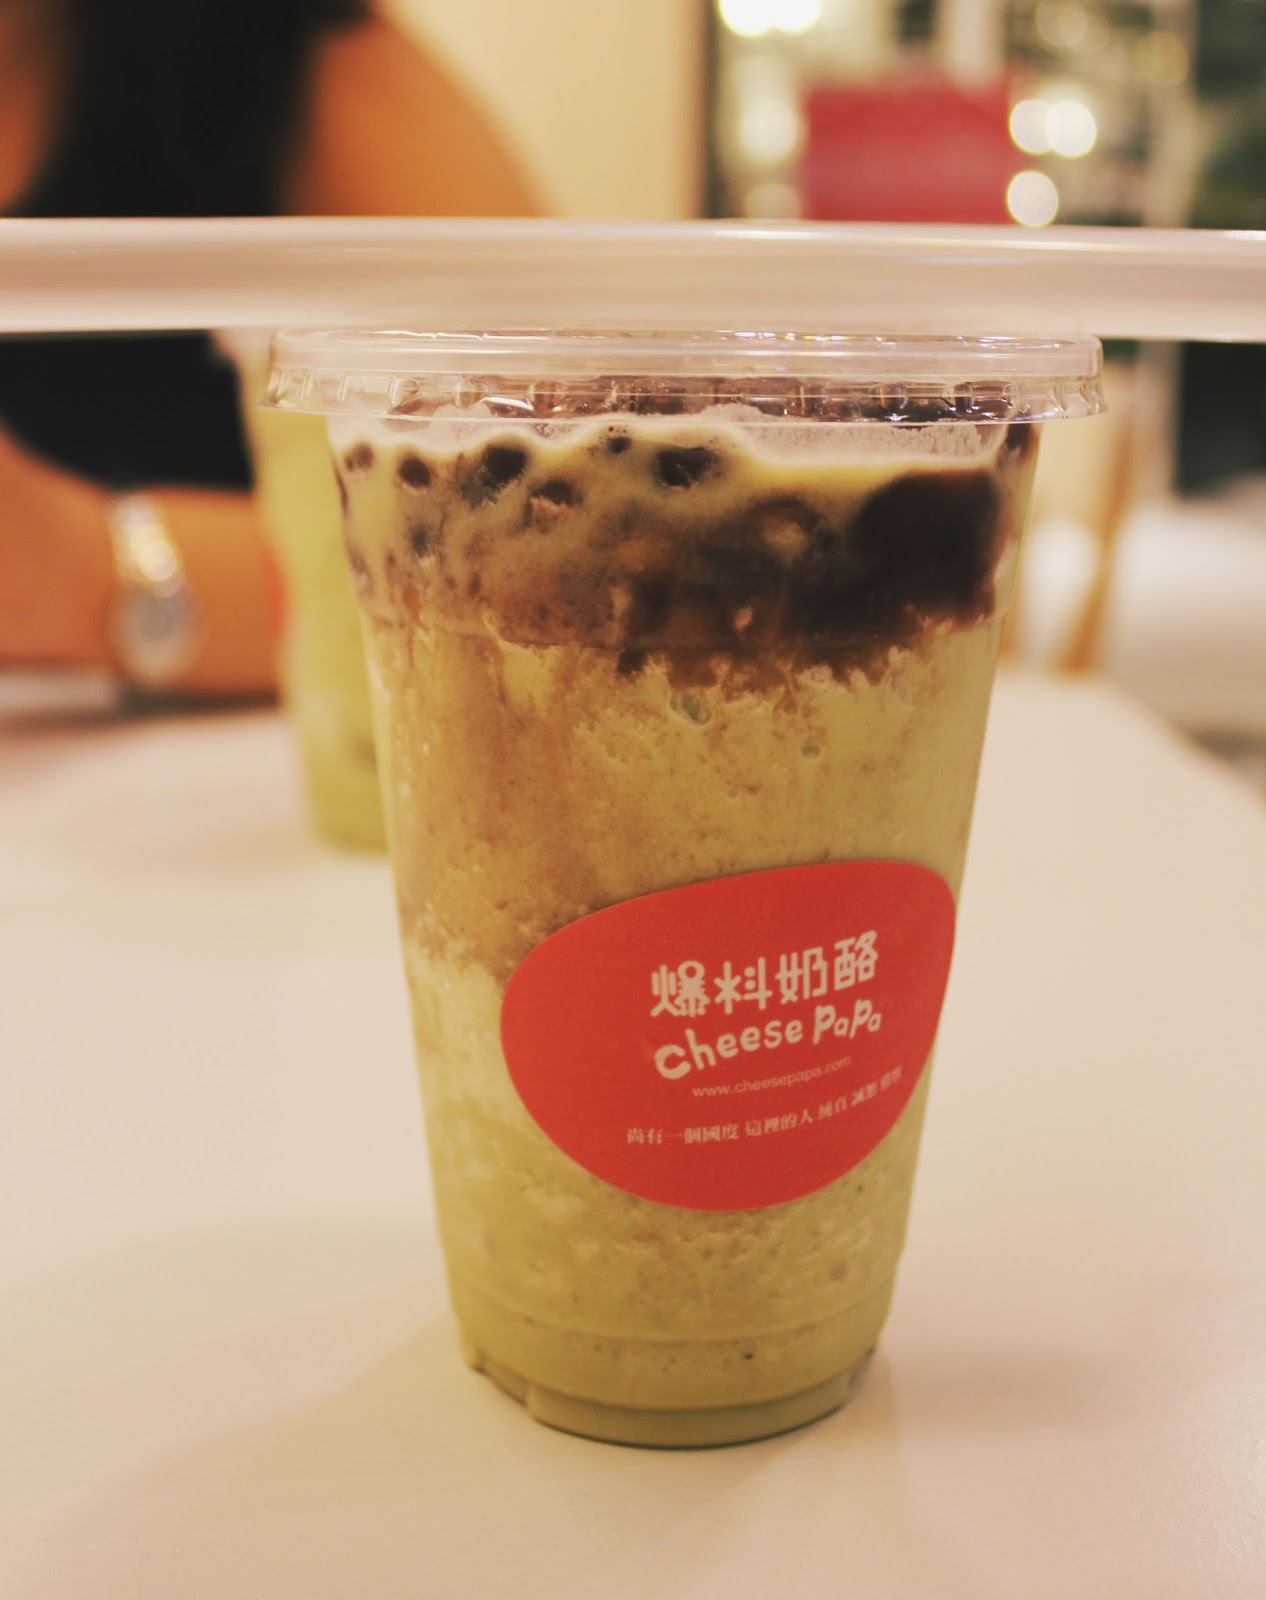 matcha drink dessert cafe cheap taiwan cheese papa